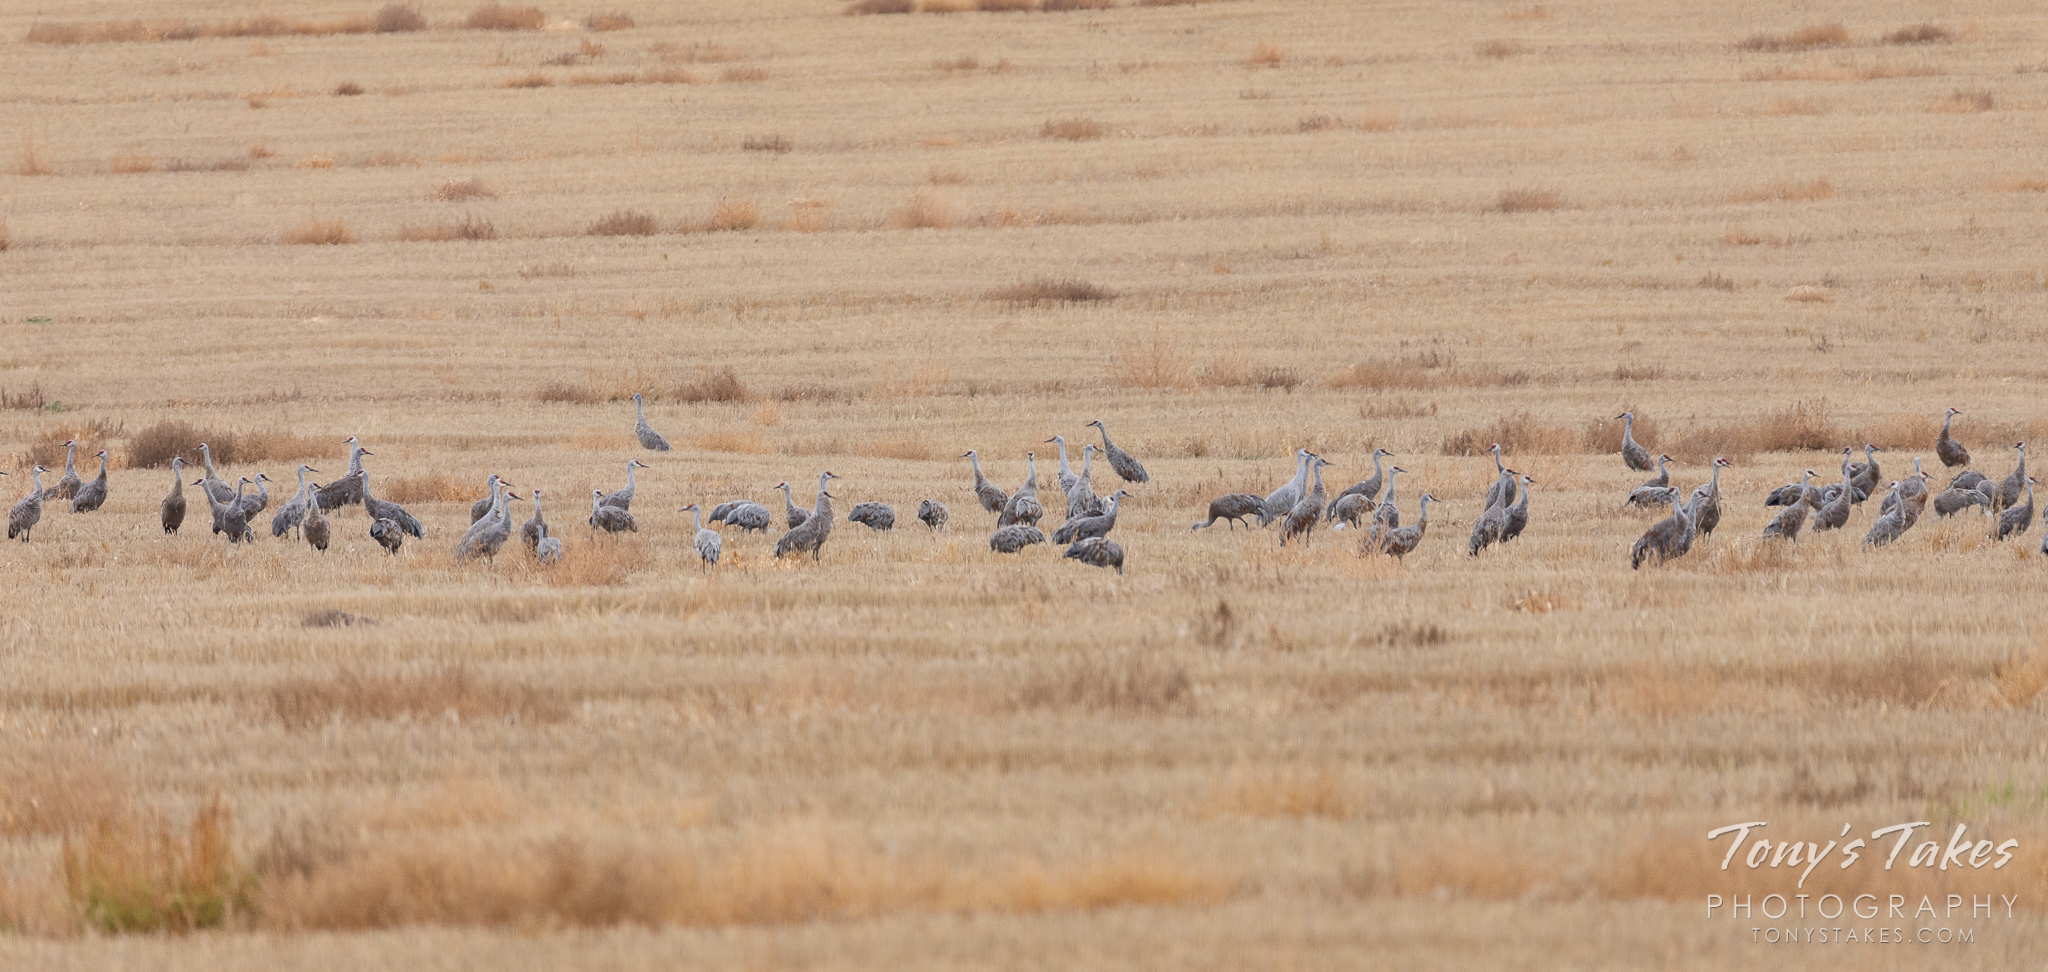 Sandhill Cranes galore on the plains